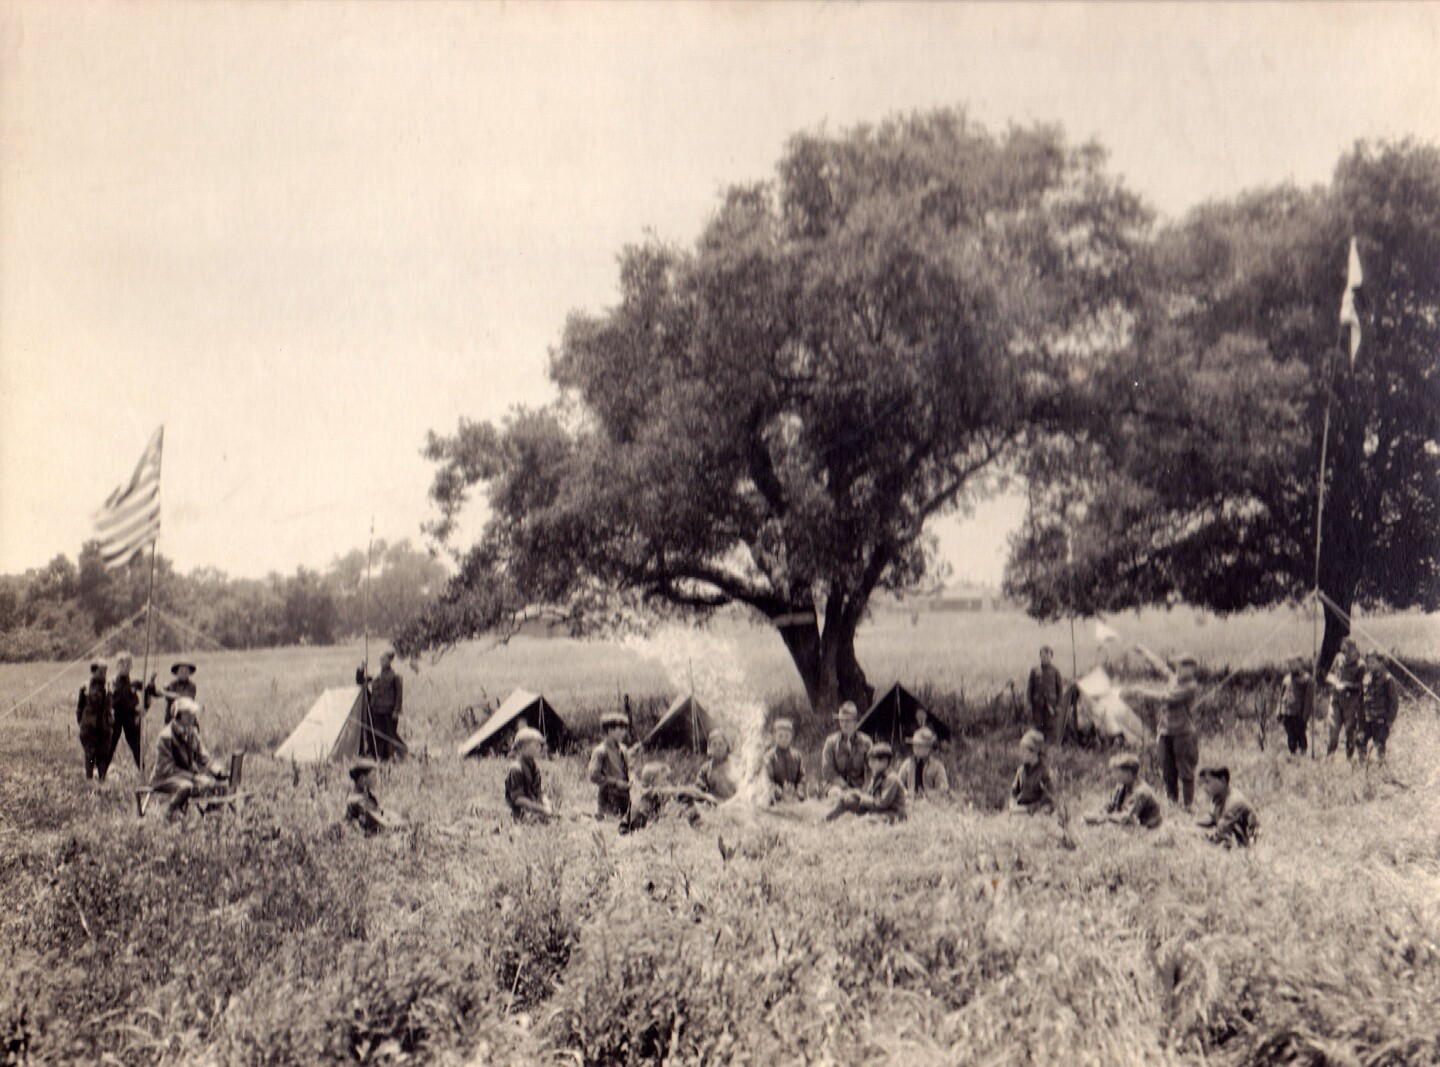 A troop of Boy Scouts demonstrate their skills in the open fields across from Caltech in Pasadena, at the southwest corner of East California Blvd. and South Wilson Ave. Property of Polytechnic School, Pasadena, CA.